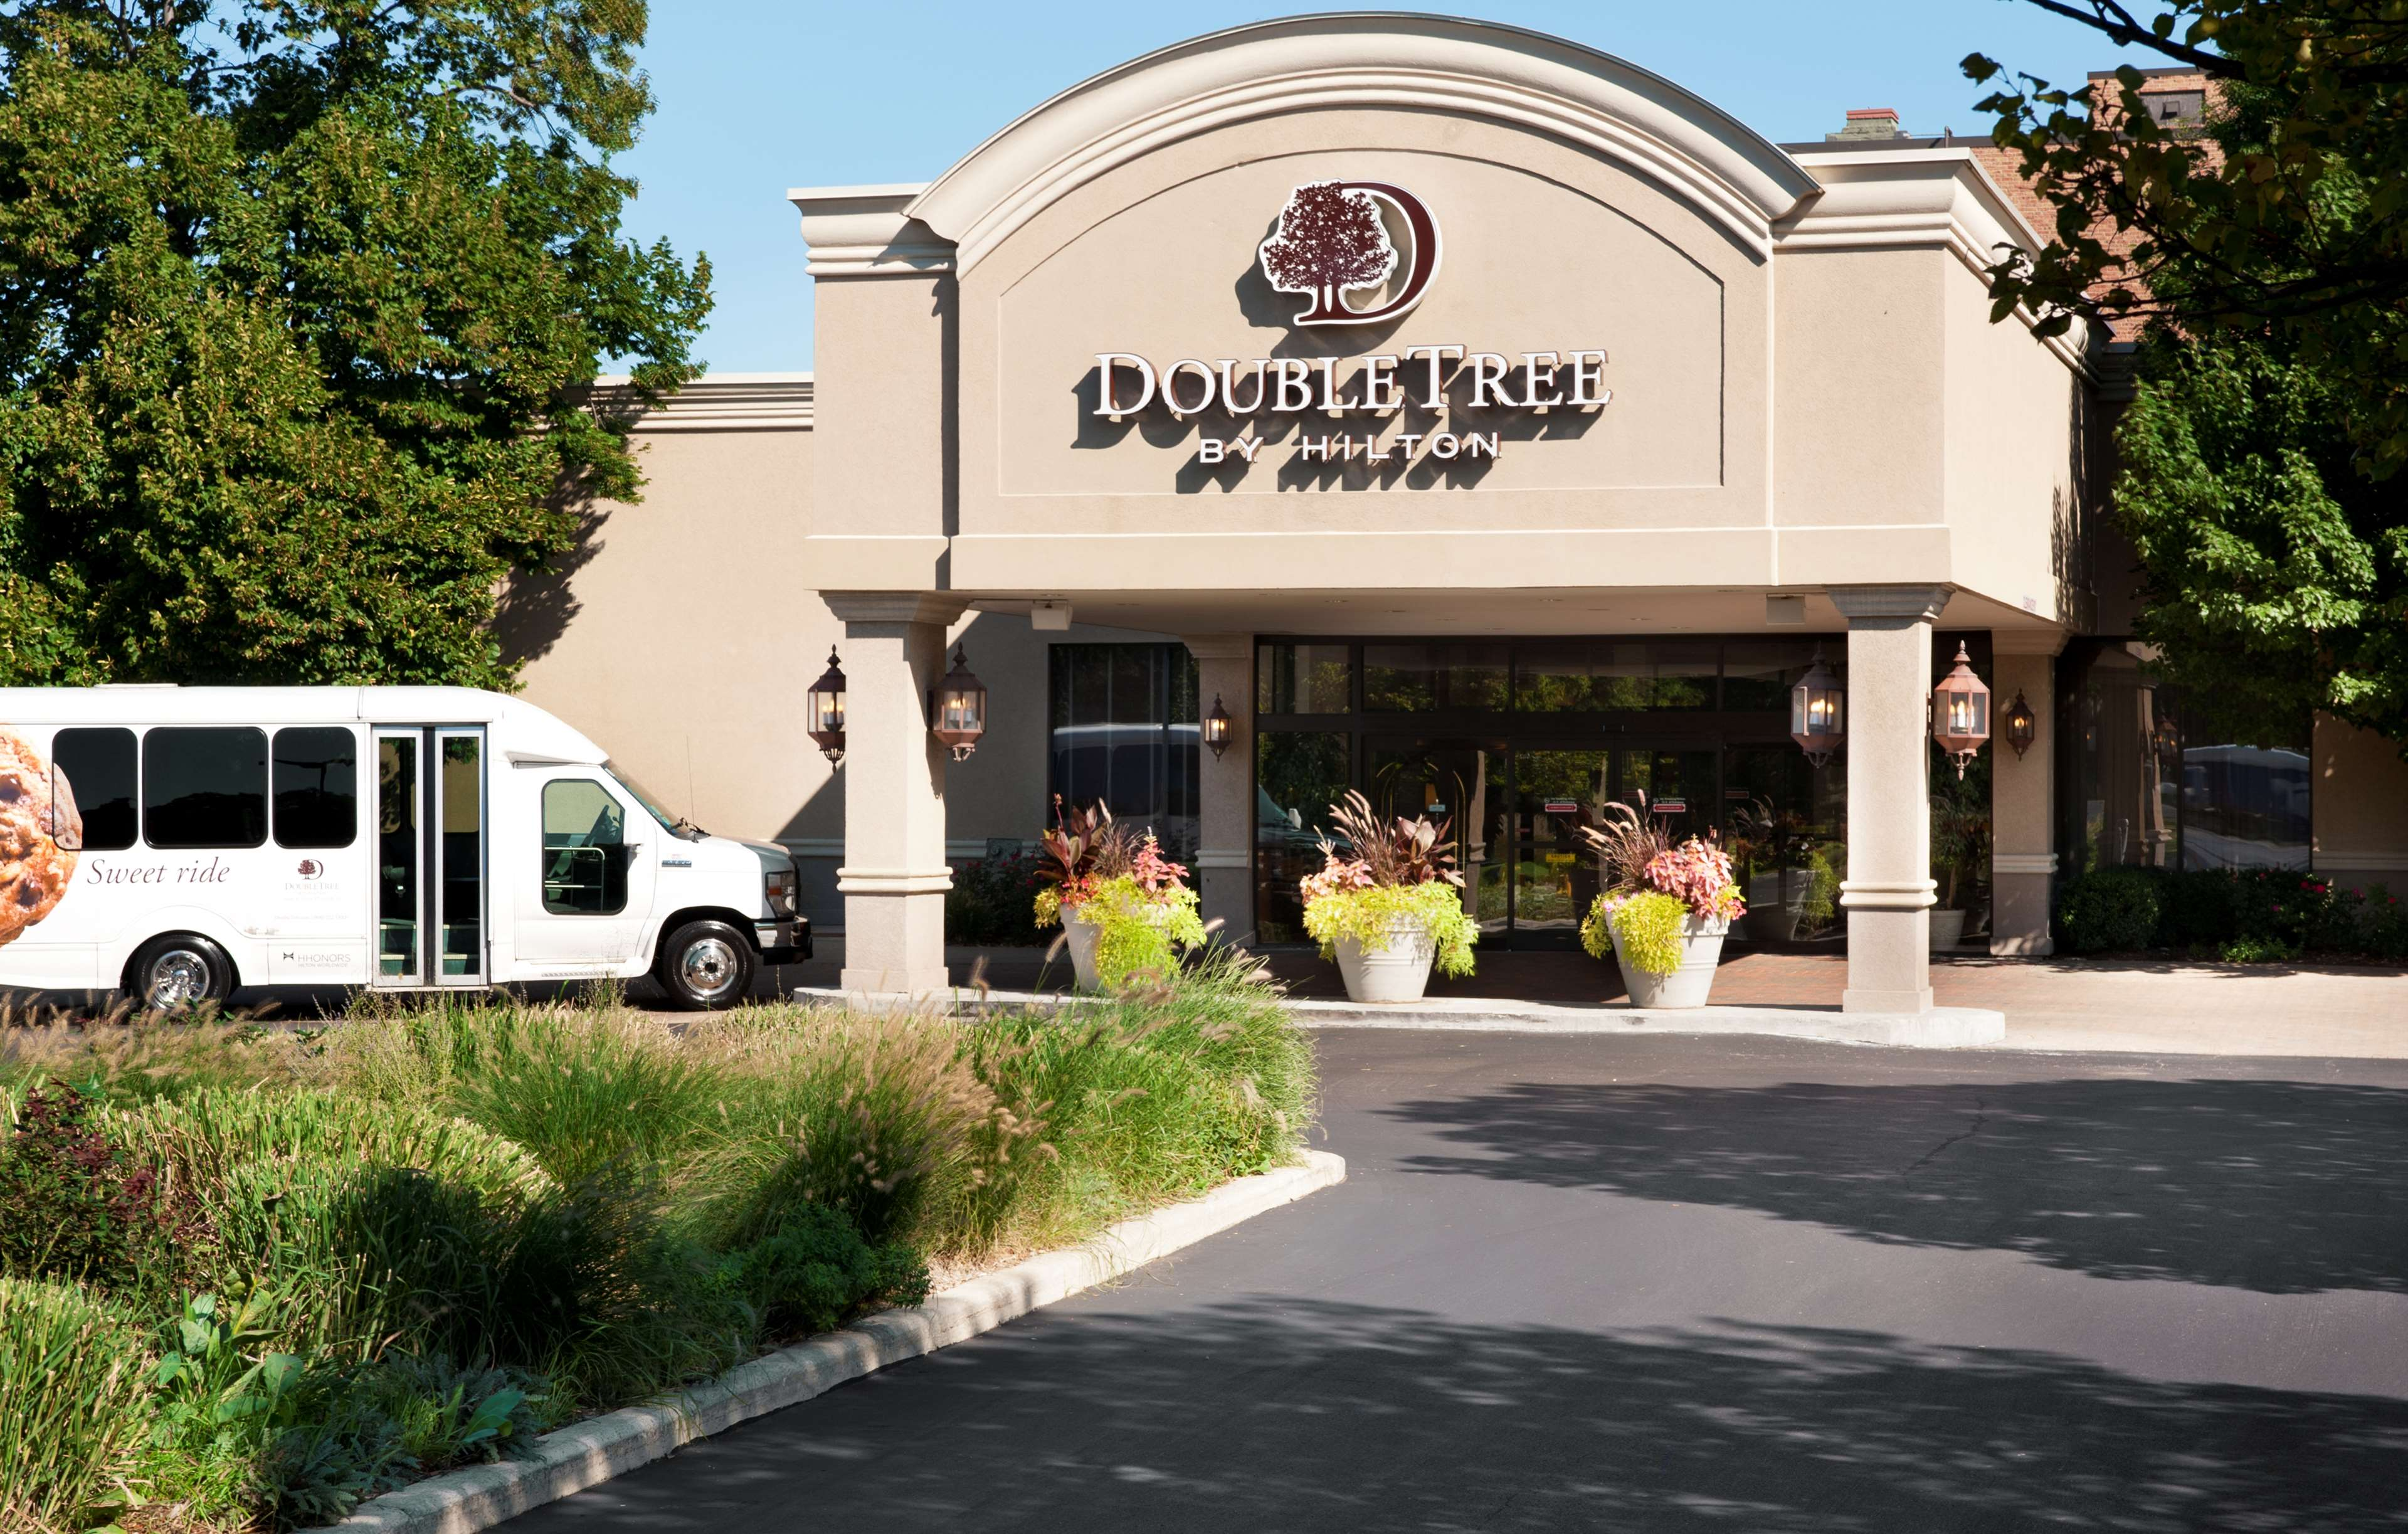 DoubleTree by Hilton Hotel Chicago - Alsip image 0